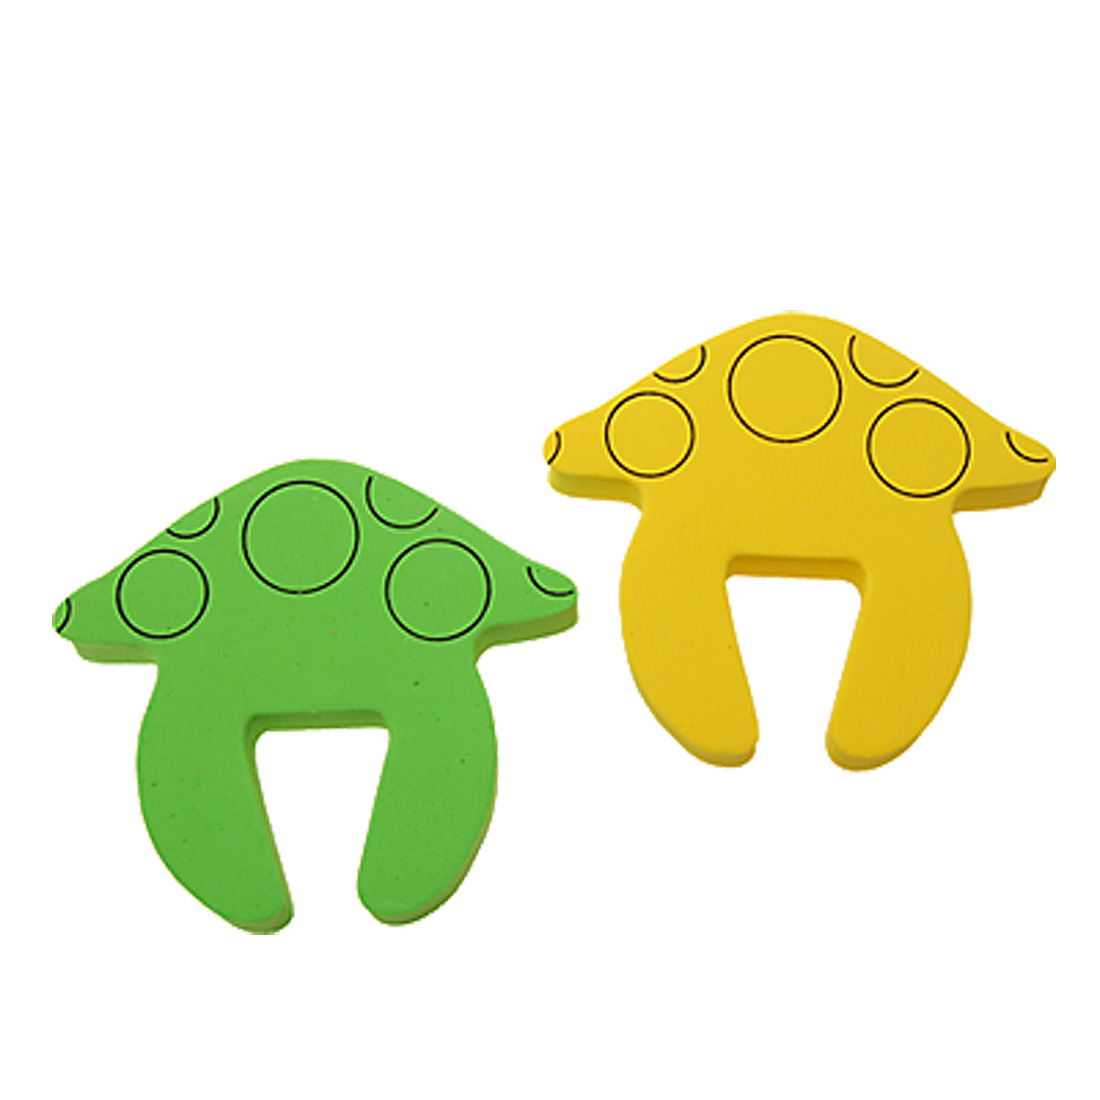 Mushroom Shaped Foam Safety Home Door Guard Green and Yellow